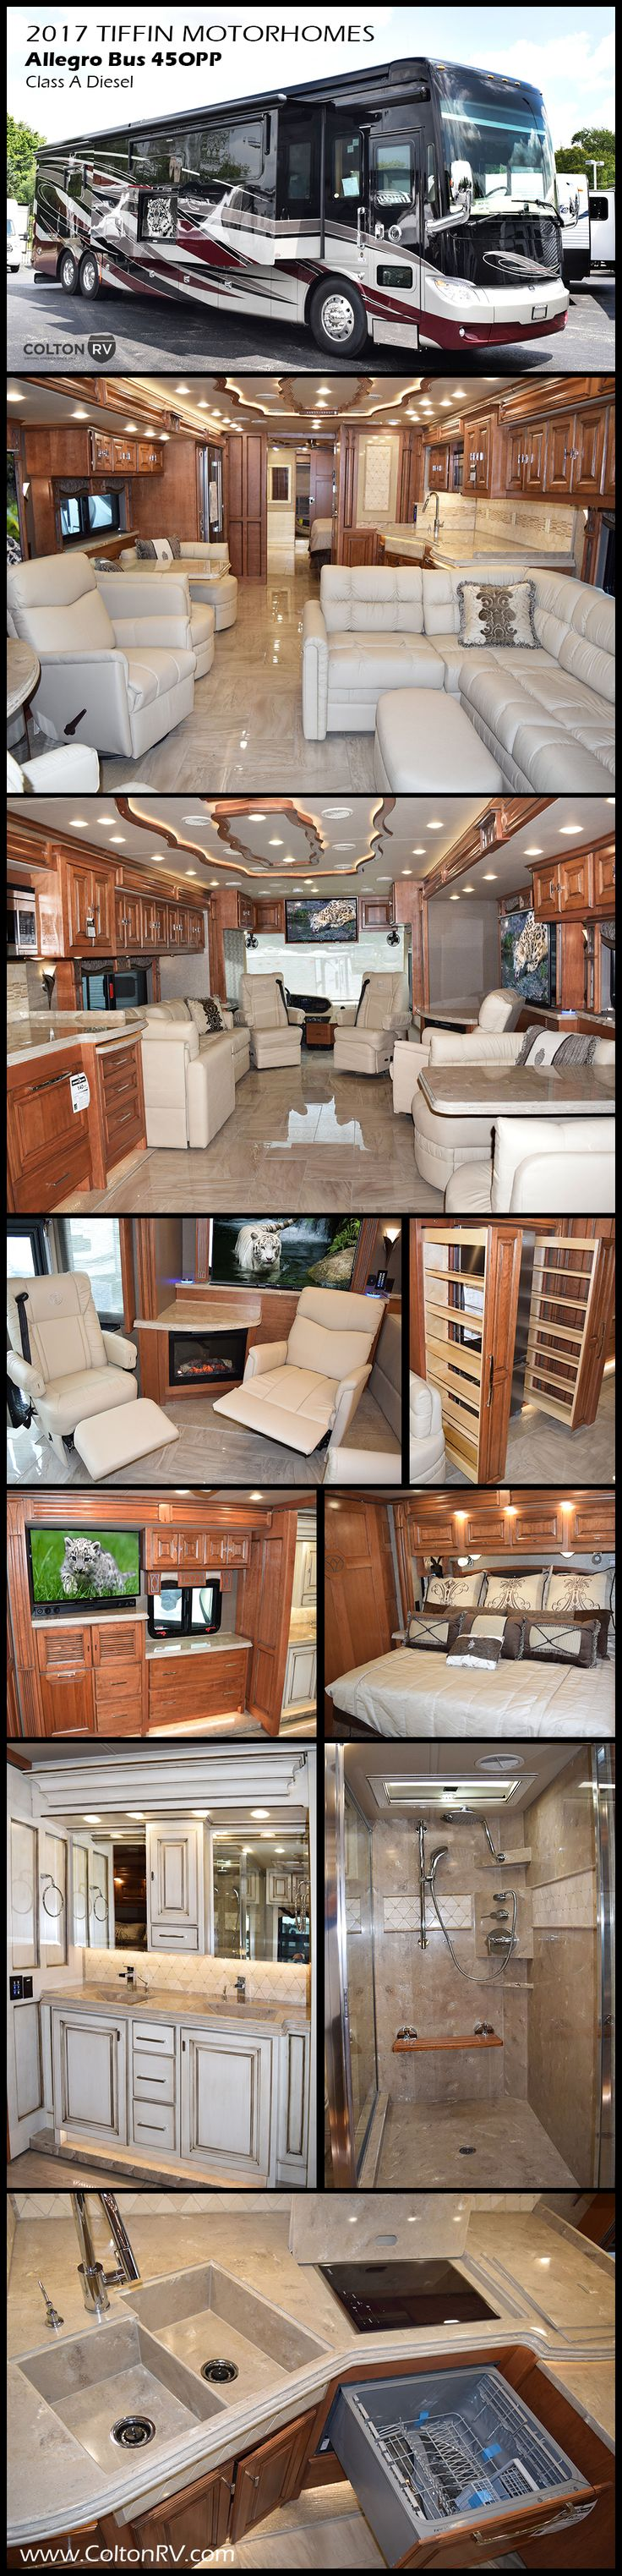 The luxurious Tiffin Motorhomes ALLEGRO BUS 45OPP Class A Diesel Coach is the preferred home sweet motorhome for full-time RVers. Built on Tiffin's acclaimed PowerGlide chassis, this bus delivers elbow room to spare, with 7' foot ceilings, four slide outs, plus 175cubic feet of basement storage! You will love the look of the fine craftsmanship in every square inch of this coach, from the hand-laid porcelain tile floor to the handcrafted cabinetry. A truly gorgeous RV!